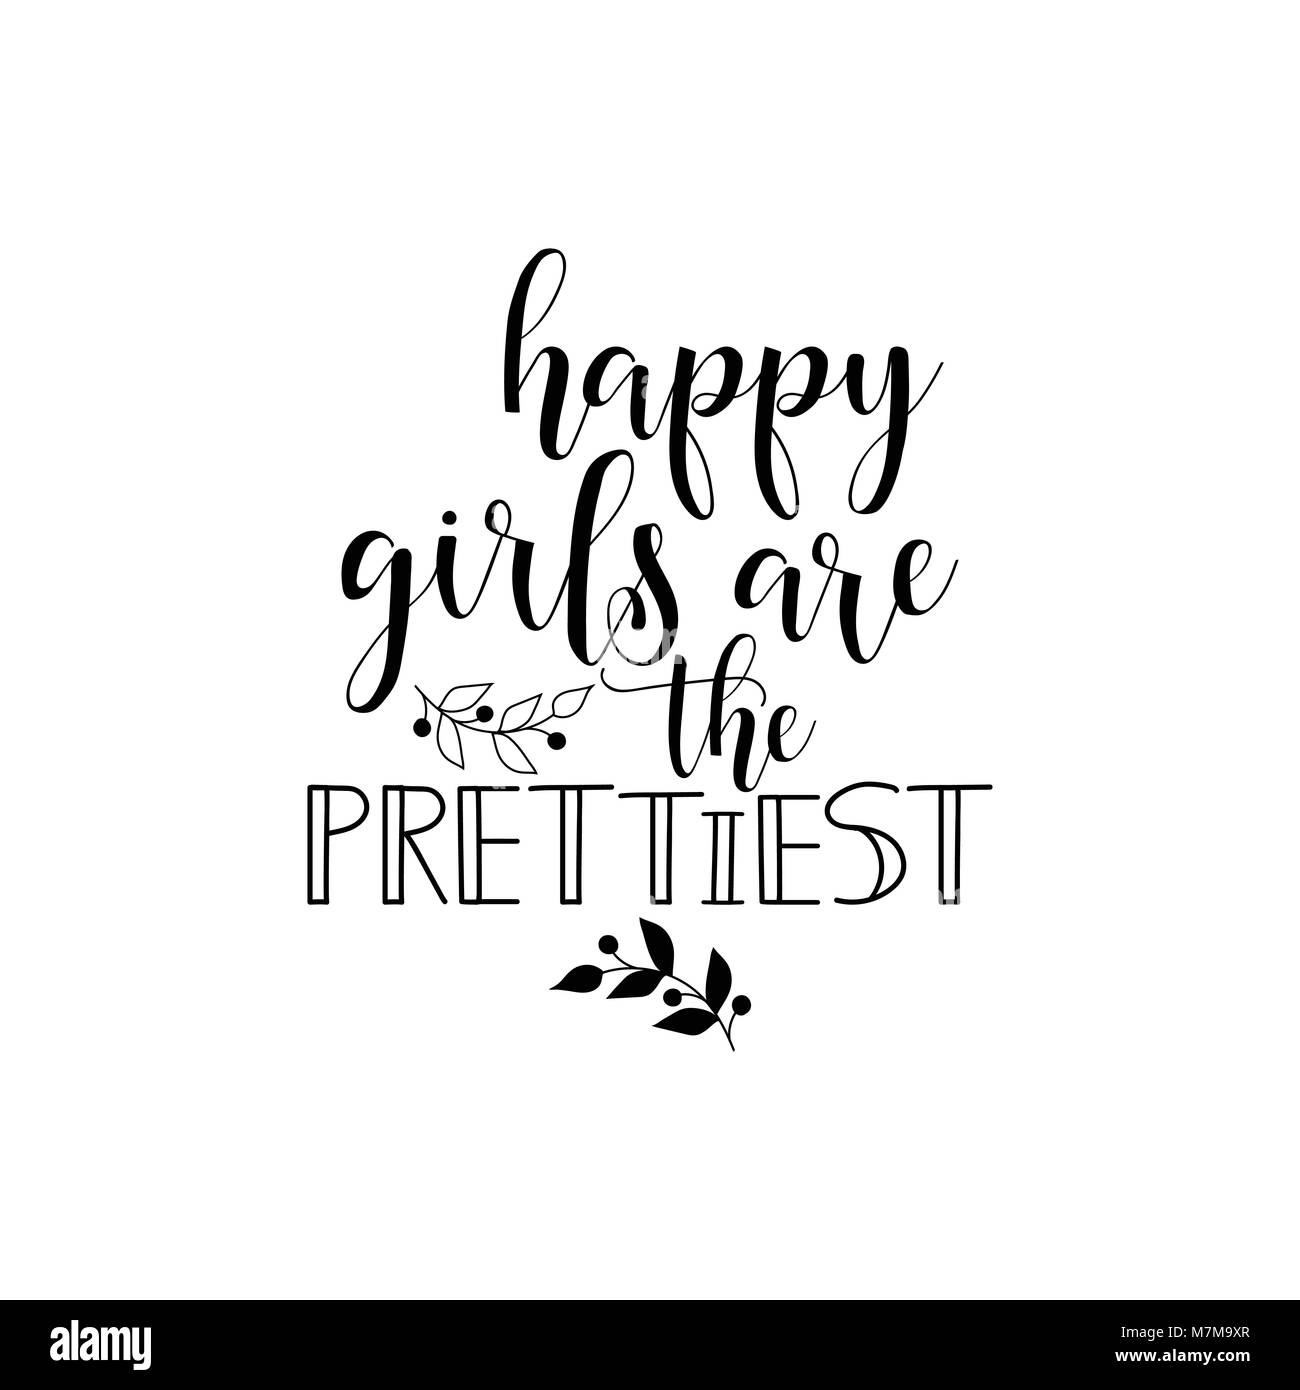 Happy girls are the prettiest. lettering. Hand drawn vector illustration. element for flyers, banner, postcards - Stock Vector